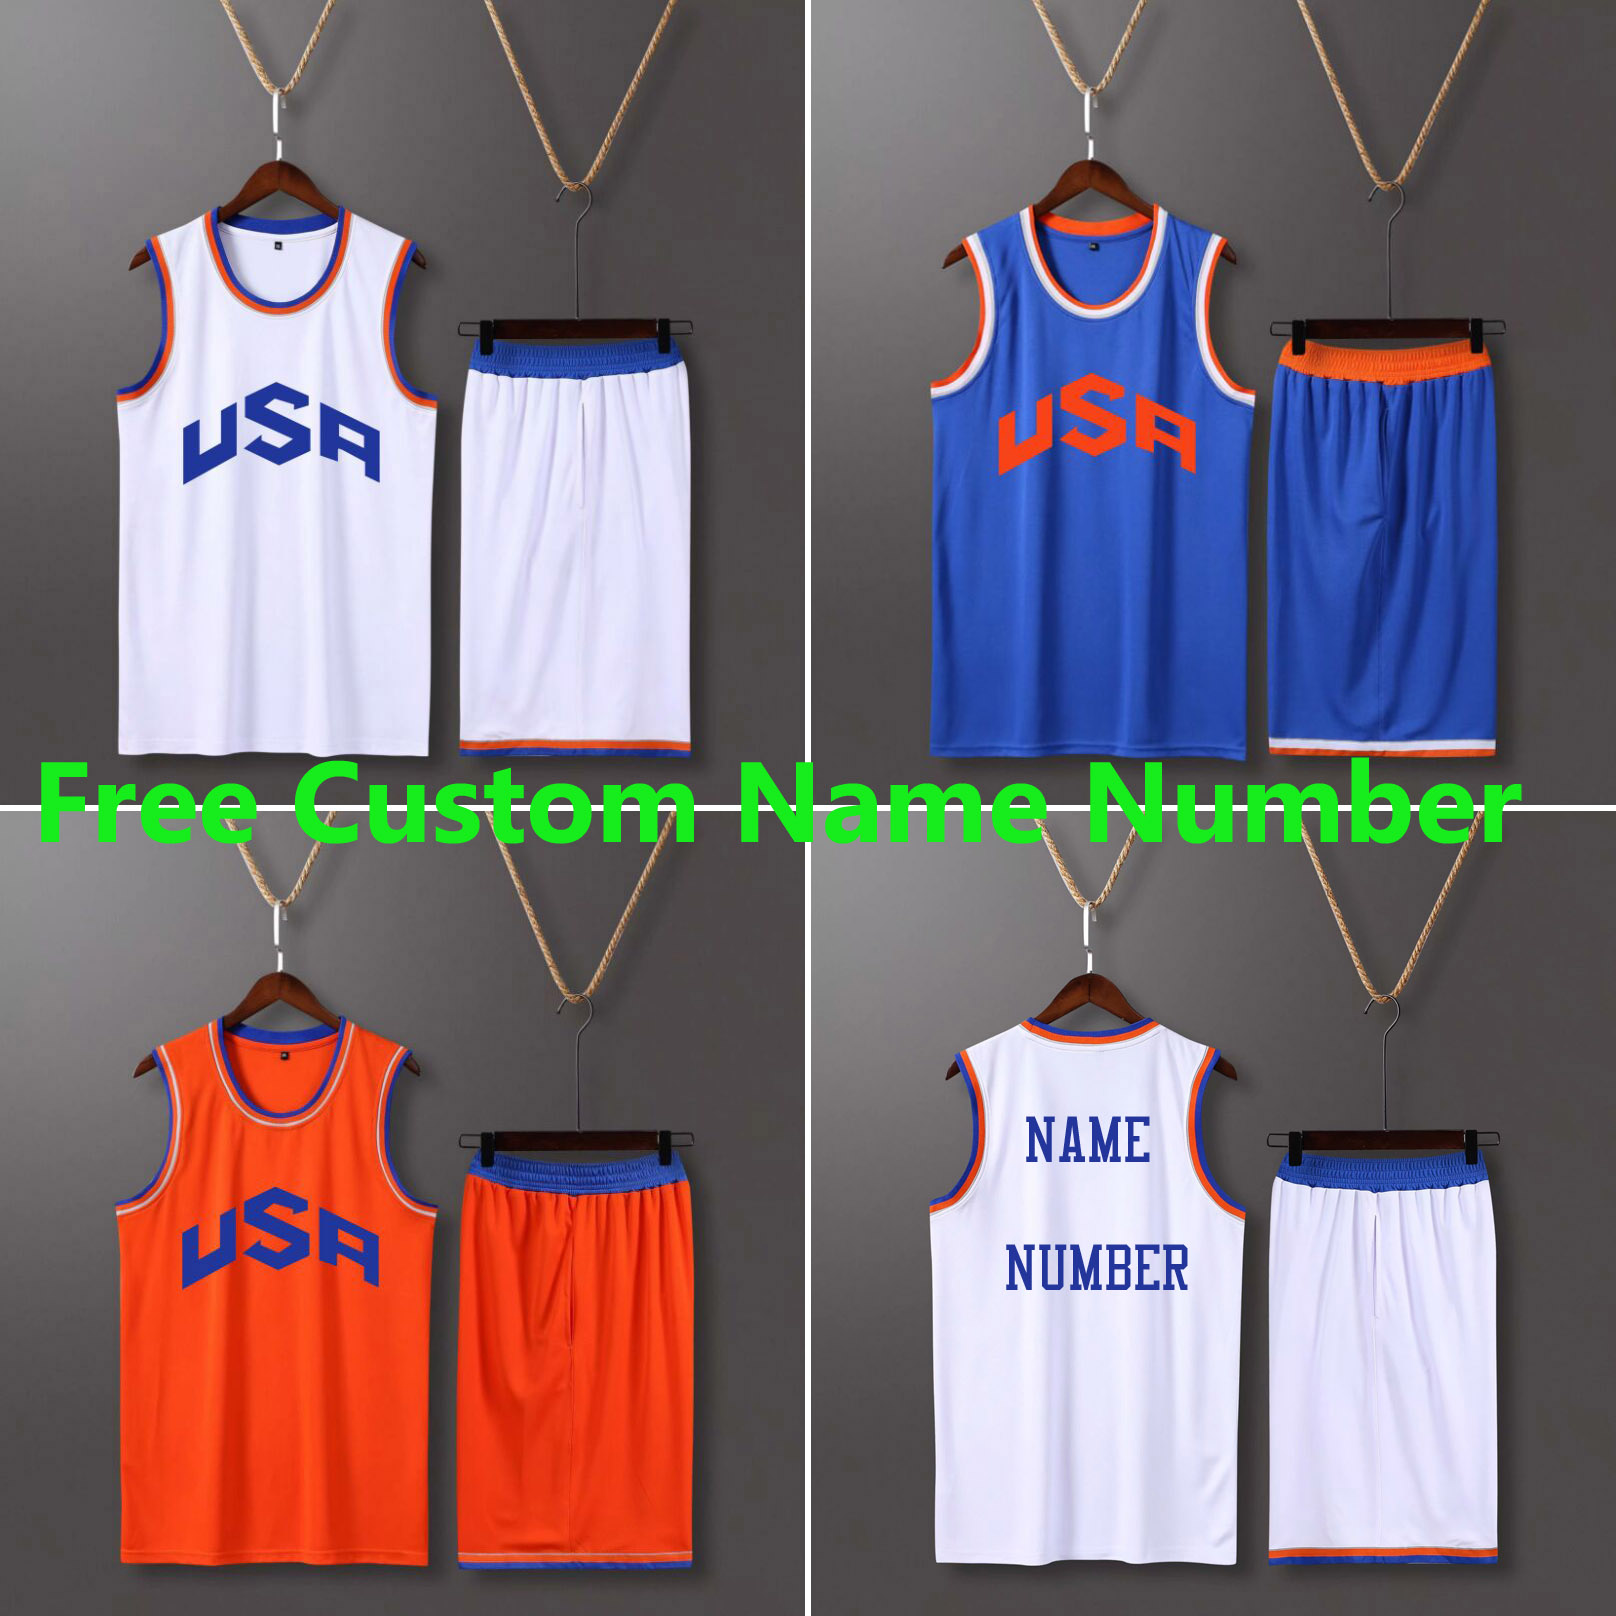 <font><b>Men</b></font> & Kid USA Basketball Kit Shirt <font><b>Shorts</b></font> <font><b>Suit</b></font> Uniforms Youth college Throwback Basketball Jersey Kits Sets Custom Team Clothing image